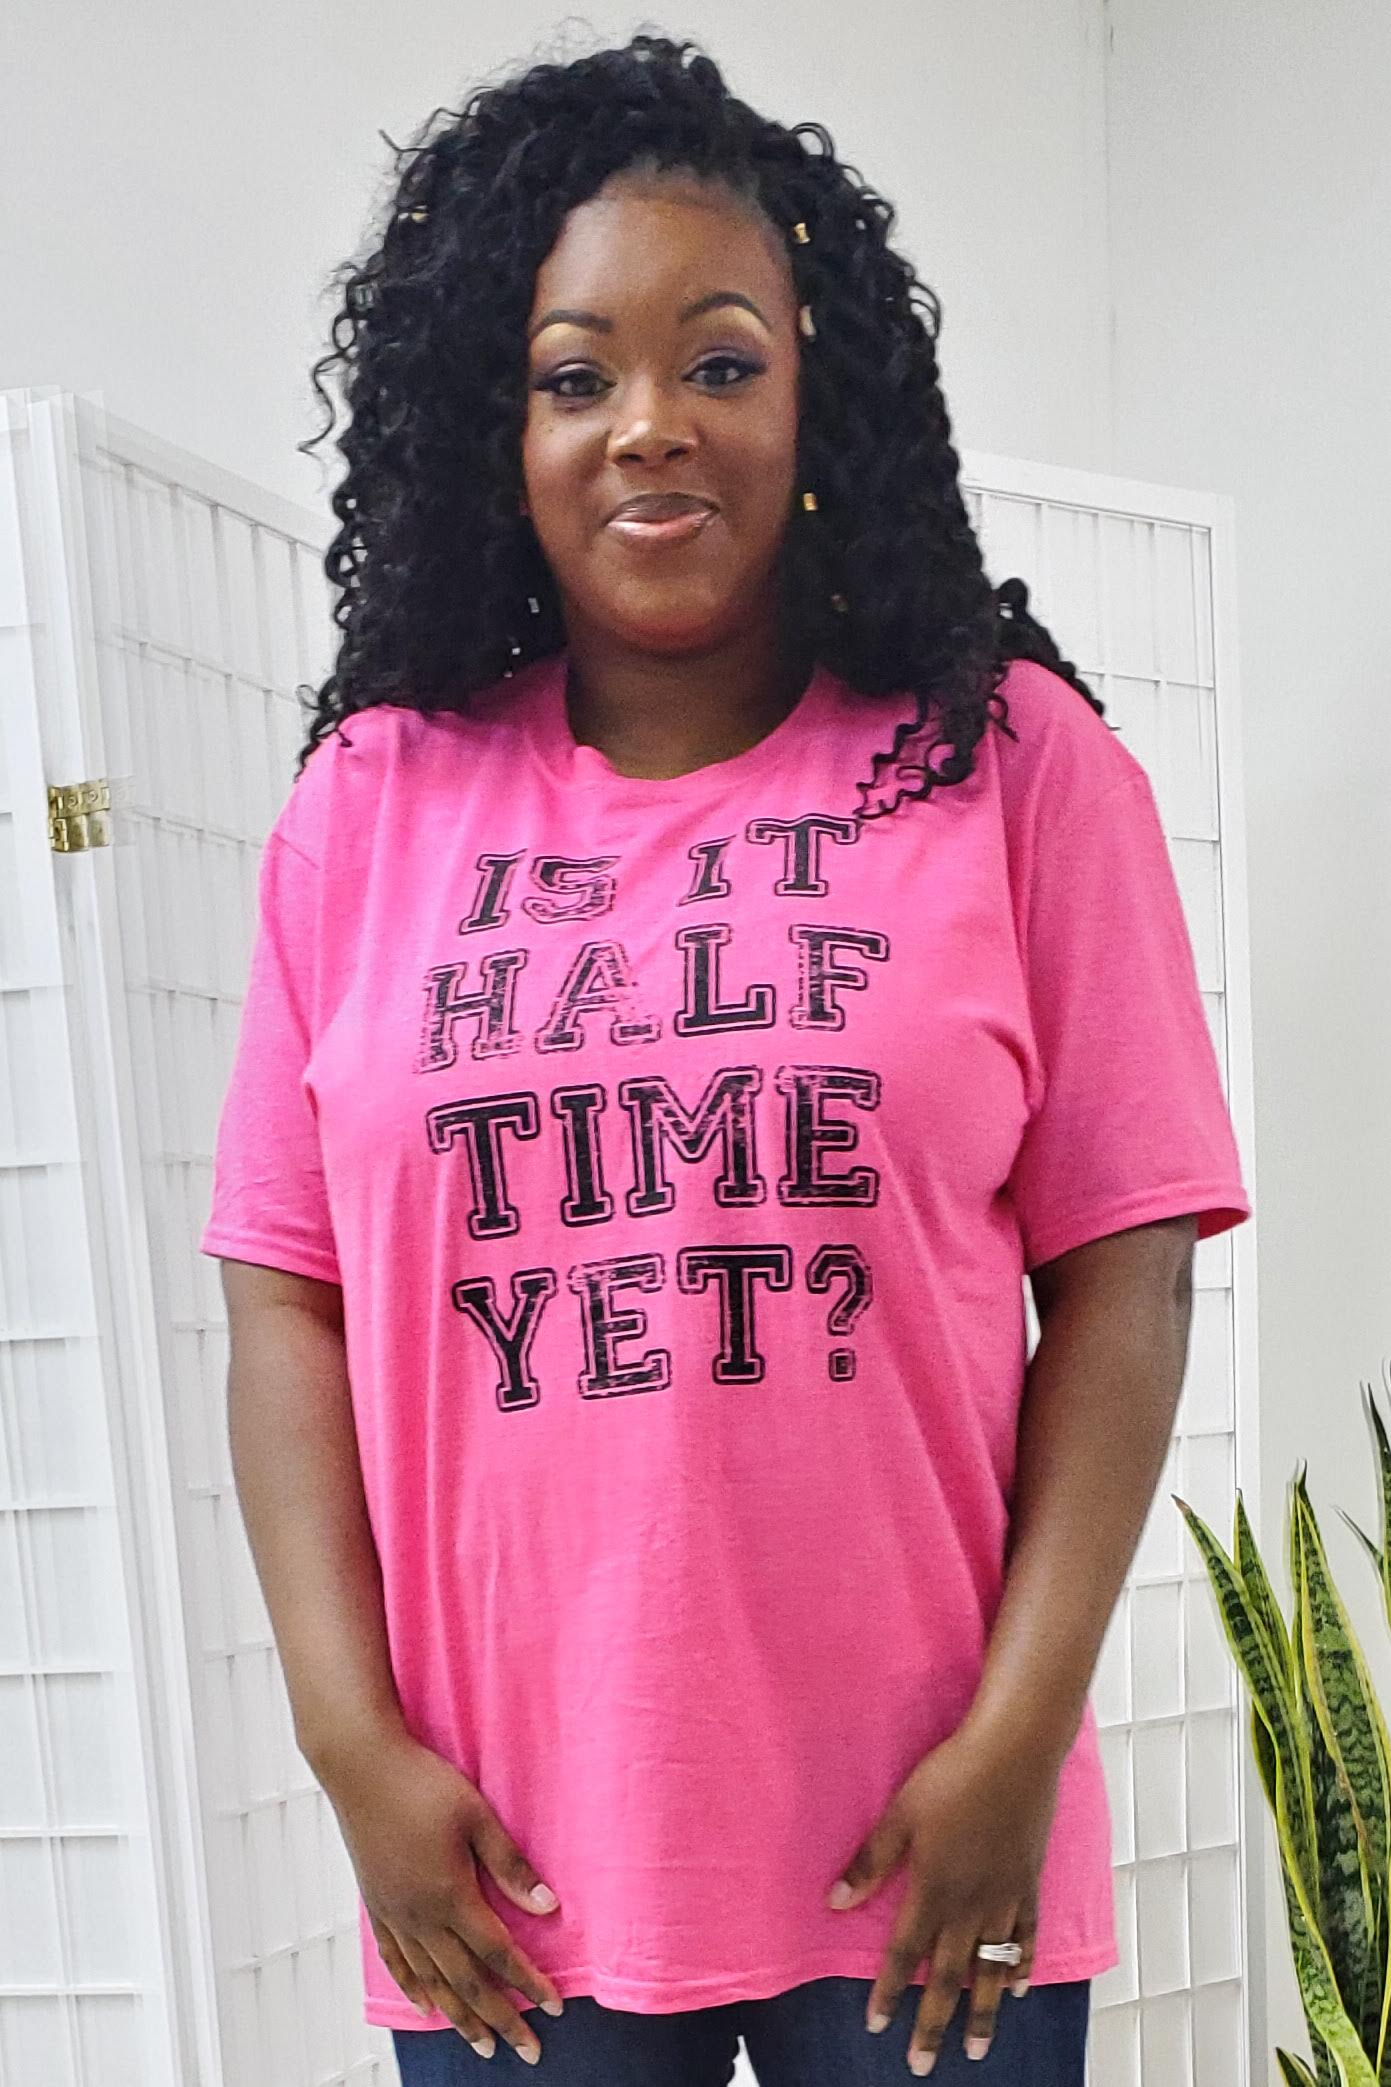 Is It Half Time Yet Tee (Gildan Softstyle)